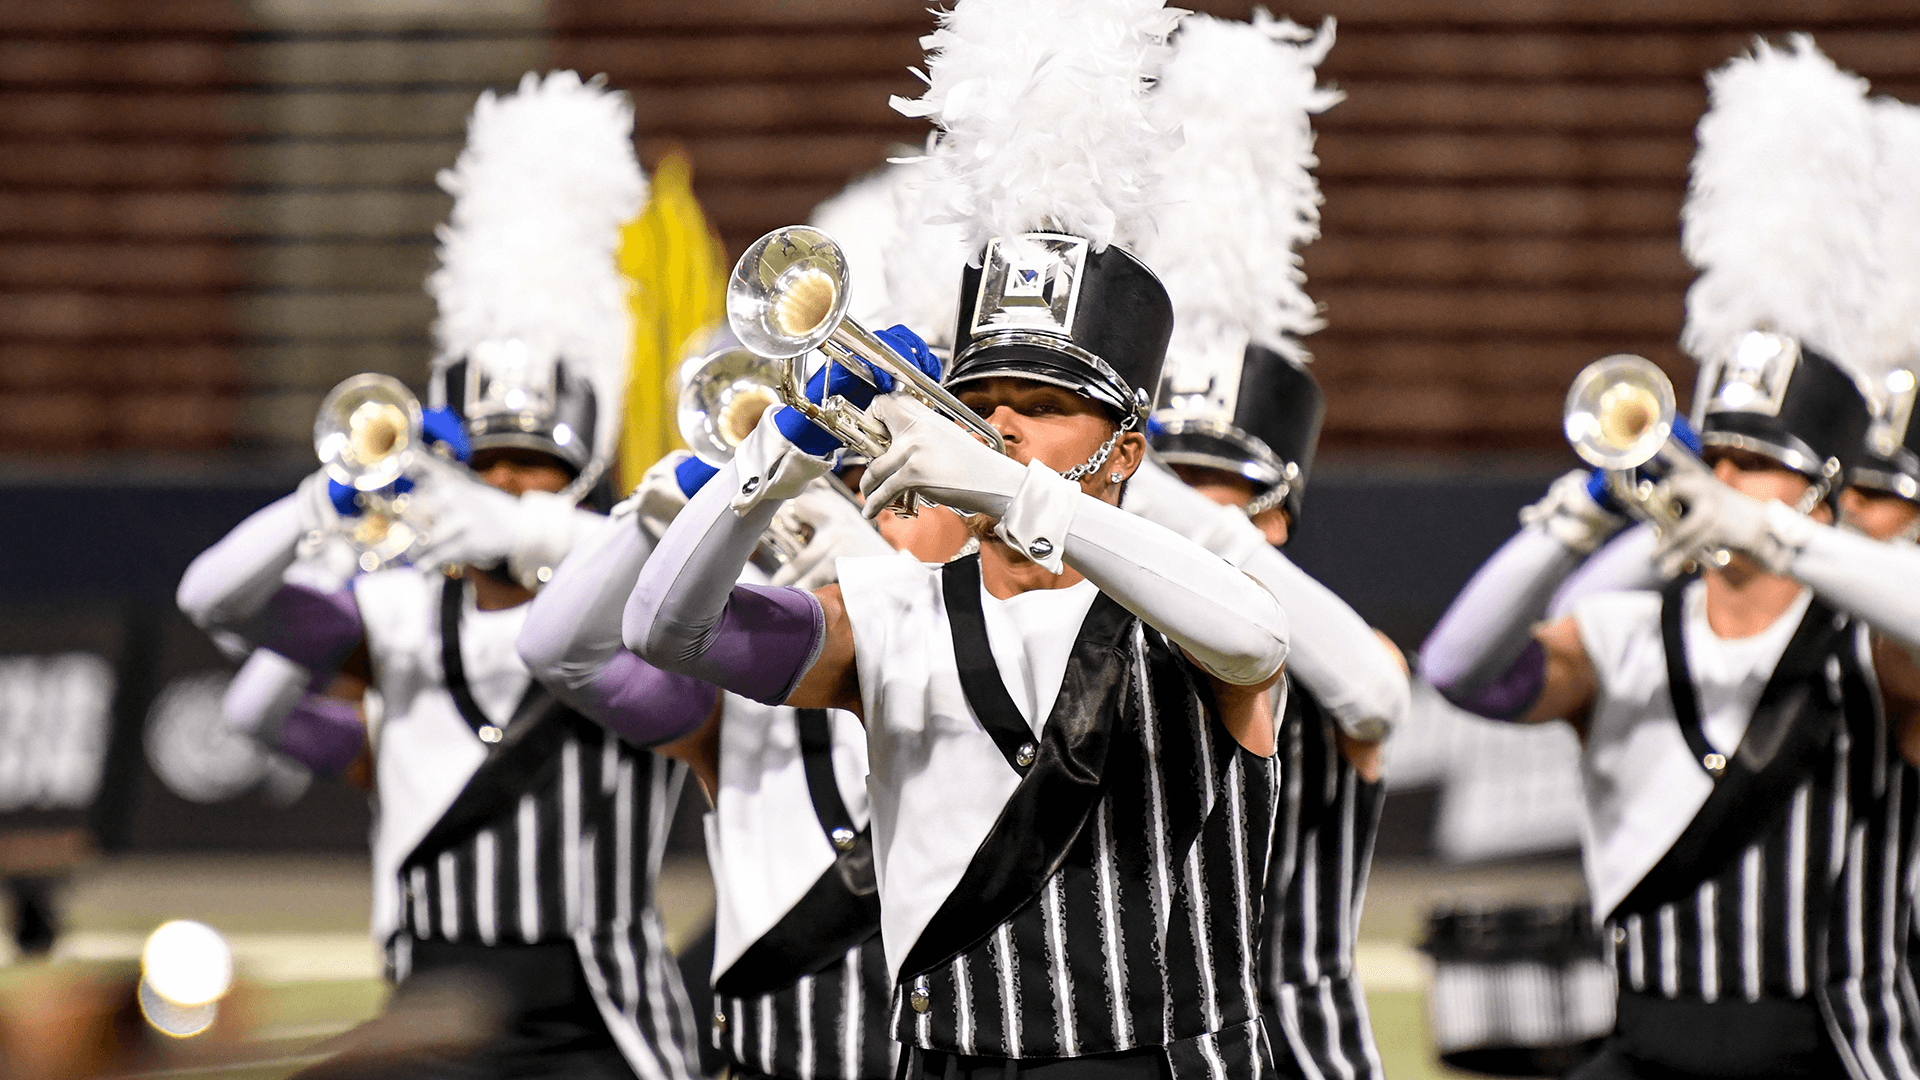 DCI Pittsburgh